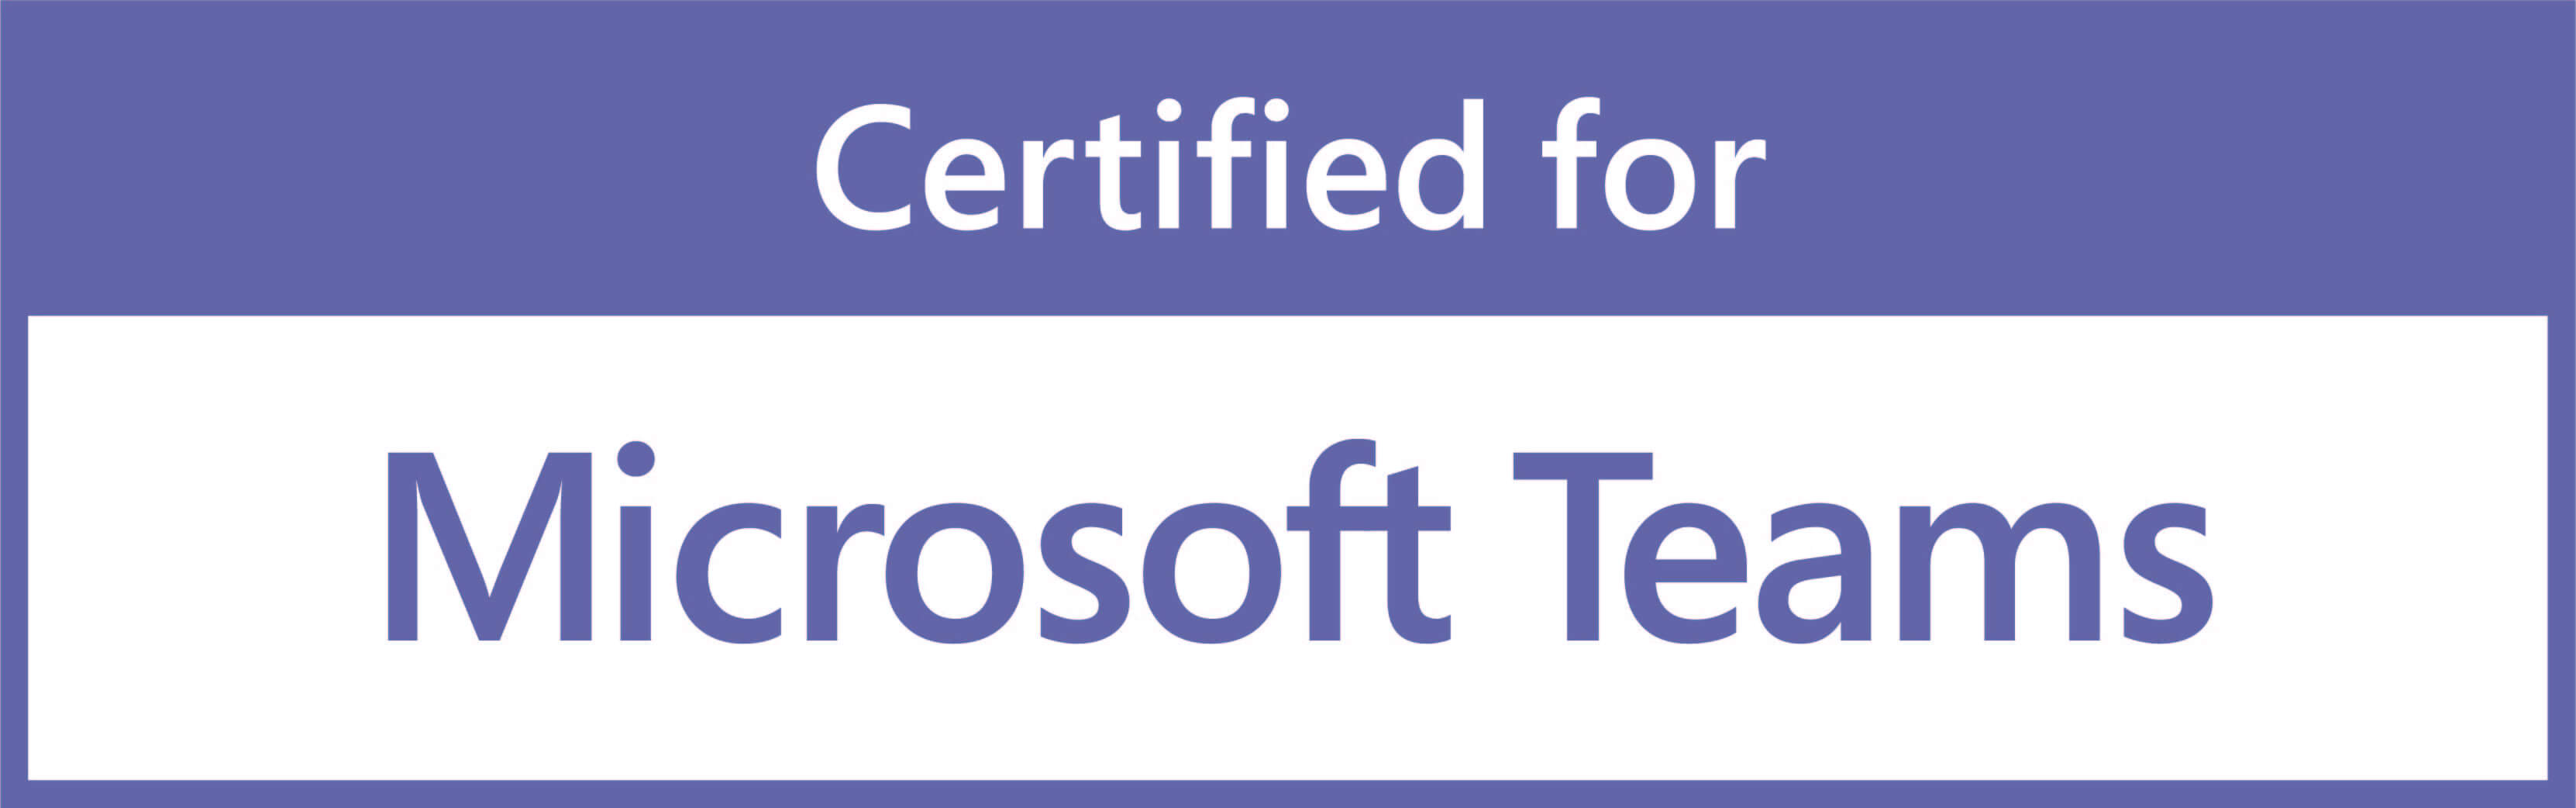 WEB_RGB_Certified_for_Microsoft_Teams_badge_horizontal_purple